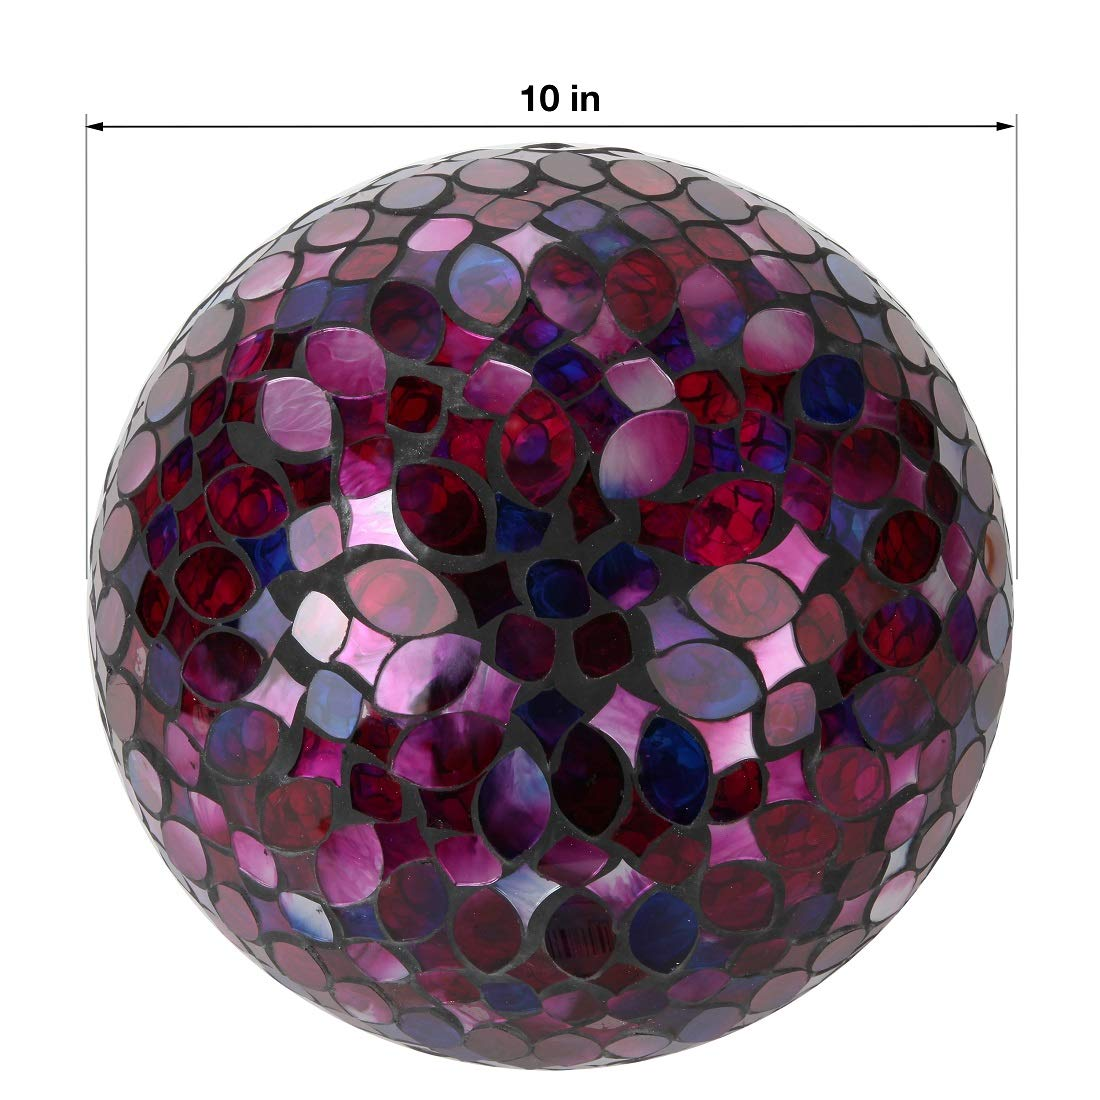 Lily's Home Colorful Mosaic Glass Gazing Ball, Designed with a Stunning Holographic Petal Mosaic Pattern to Bring Color to Any Home and Garden, Red, Blue & Purple (10 Inches Dia.) by Lilyshome (Image #4)